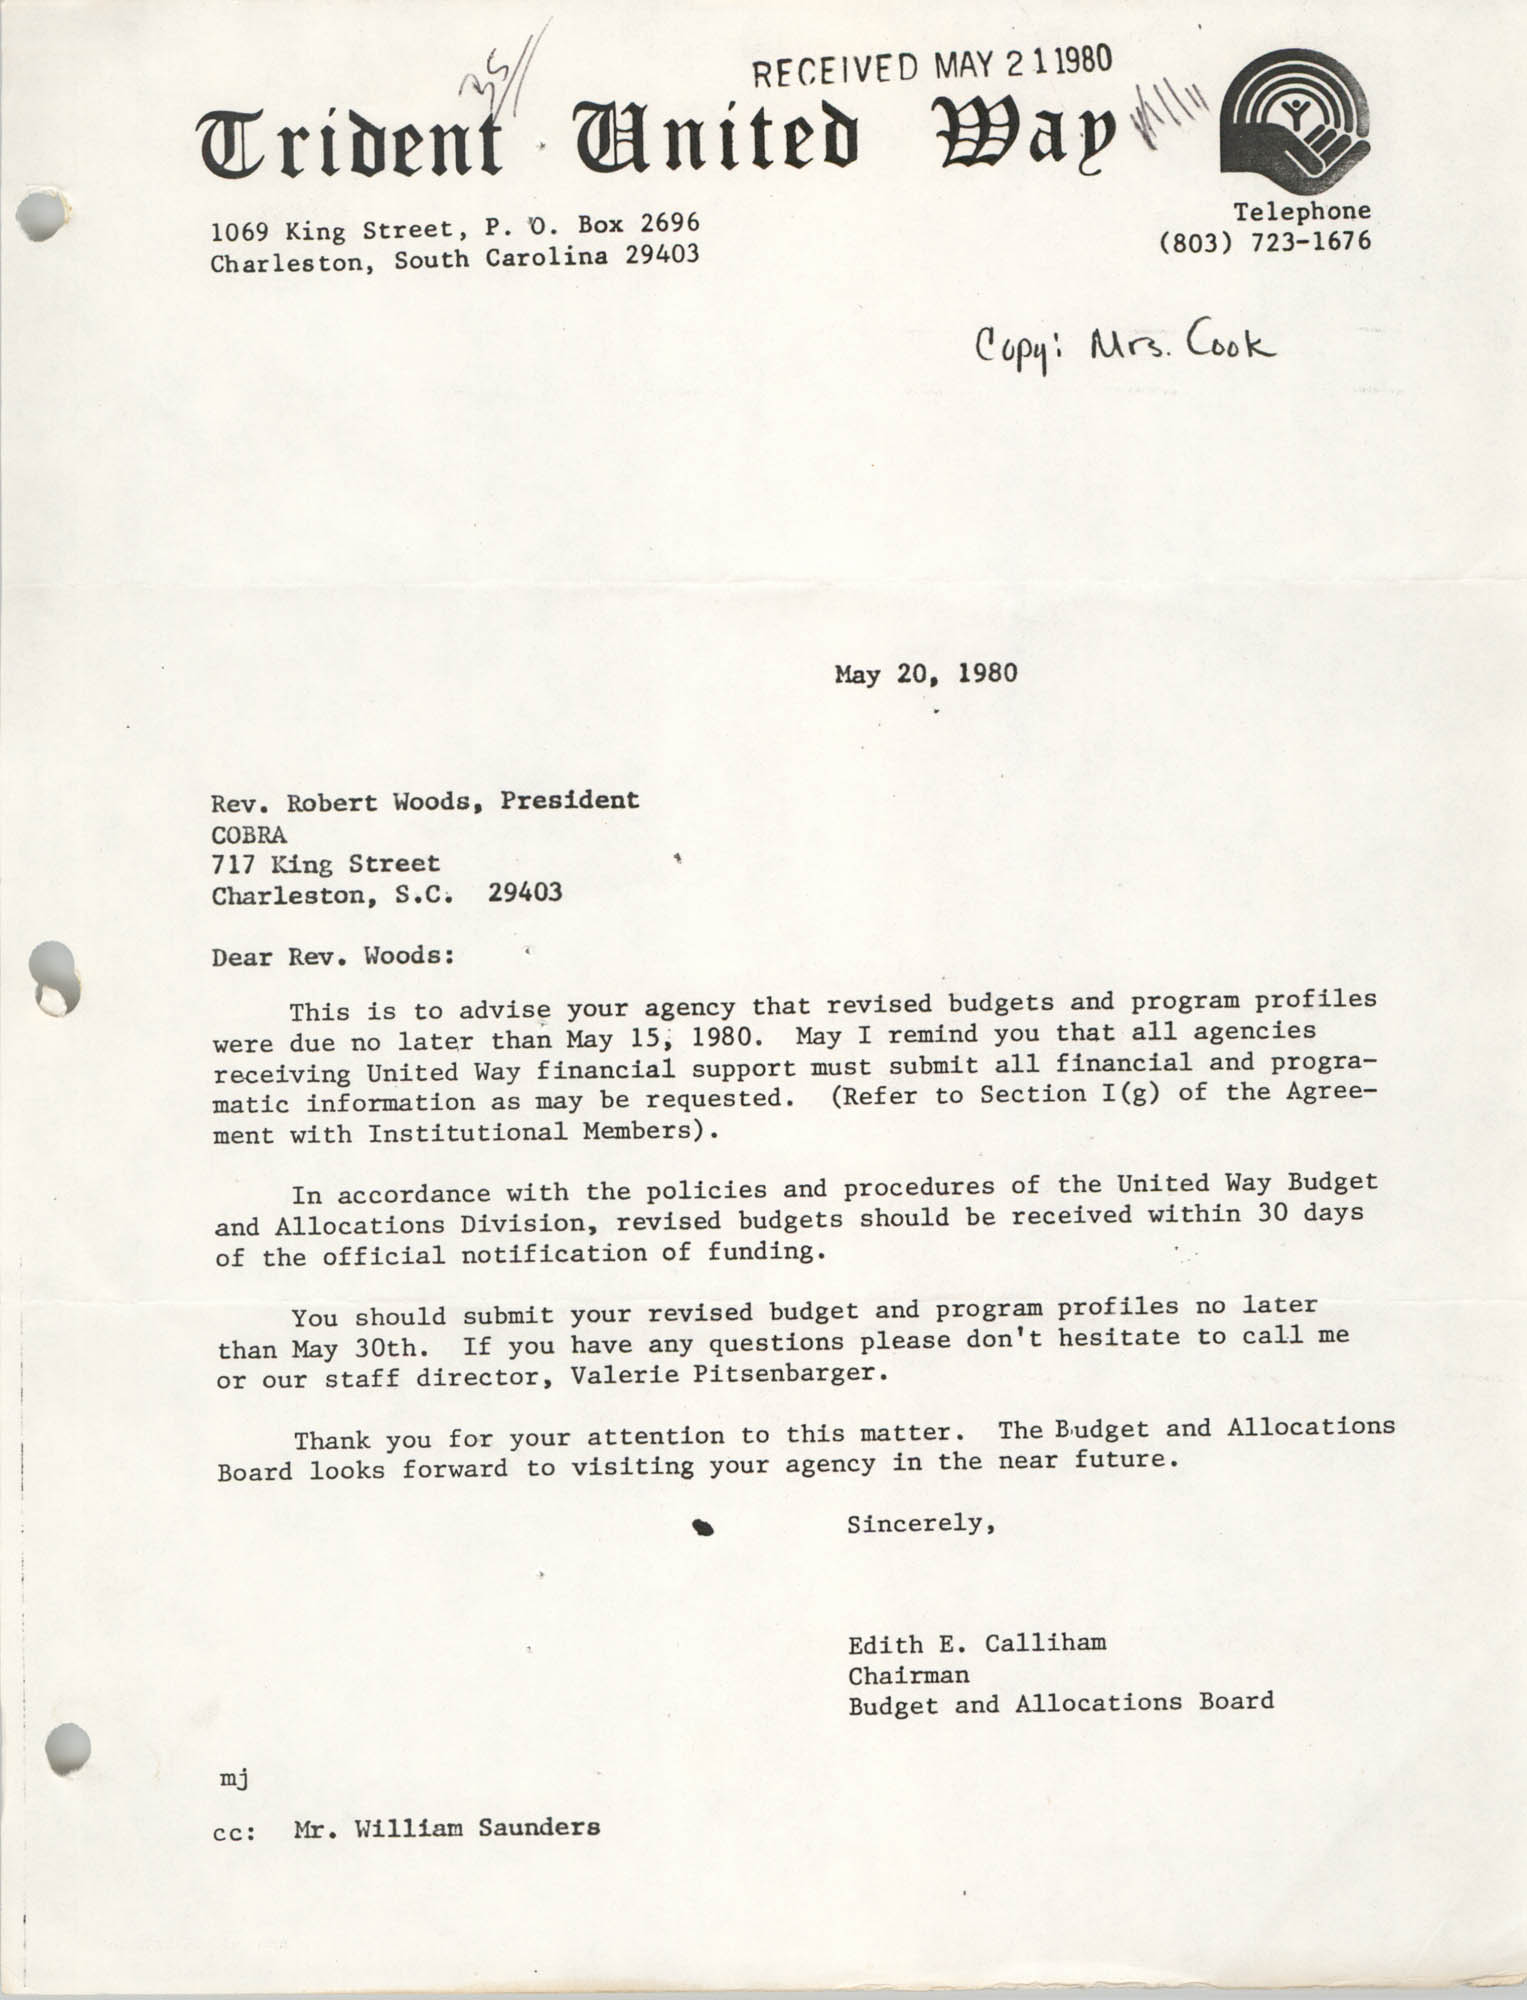 Letter from Edith E. Calliham to Robert Woods, May 20, 1980